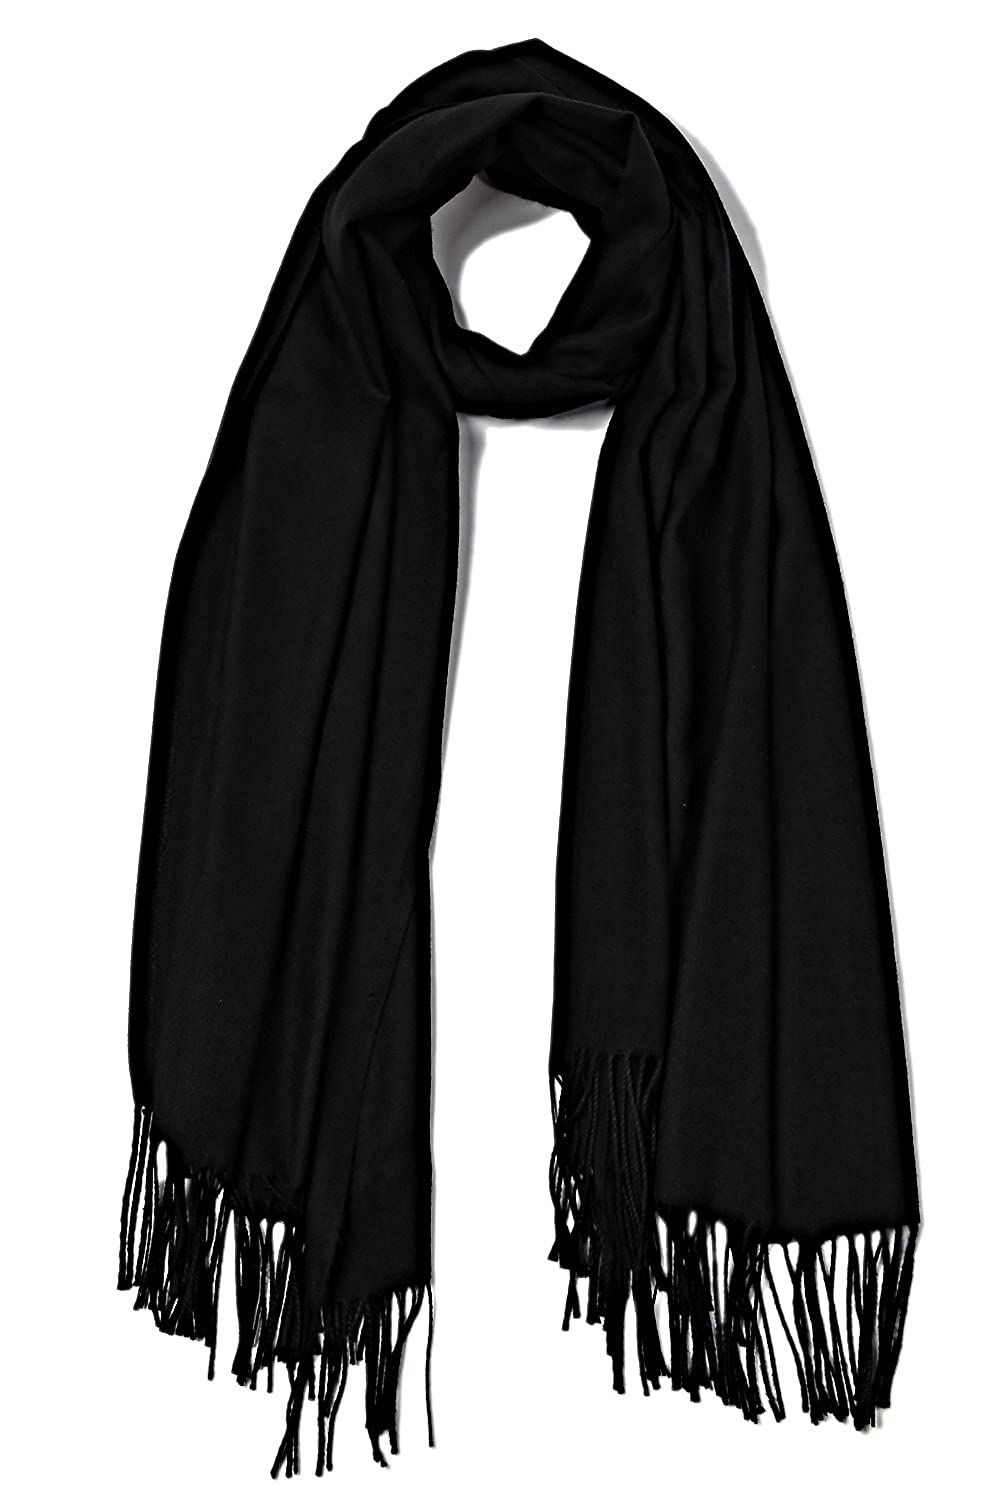 aa4b626a2 Womens Fashion Scarves - Large Soft Cashmere Feel Pashmina Shawls Wraps  Winter Light Scarf at Amazon Women's Clothing store: